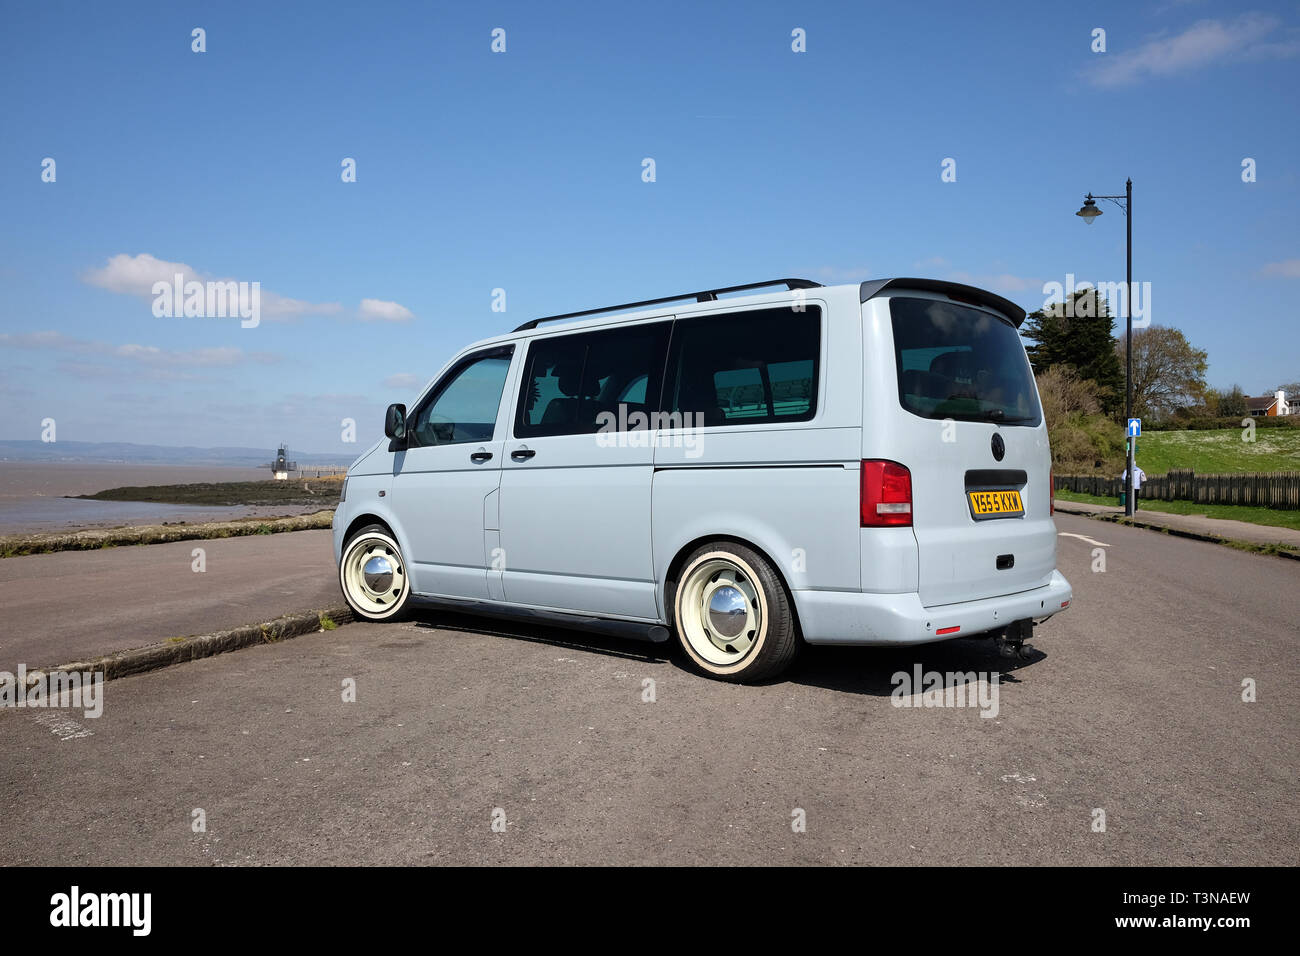 Vw T5 High Resolution Stock Photography And Images Alamy